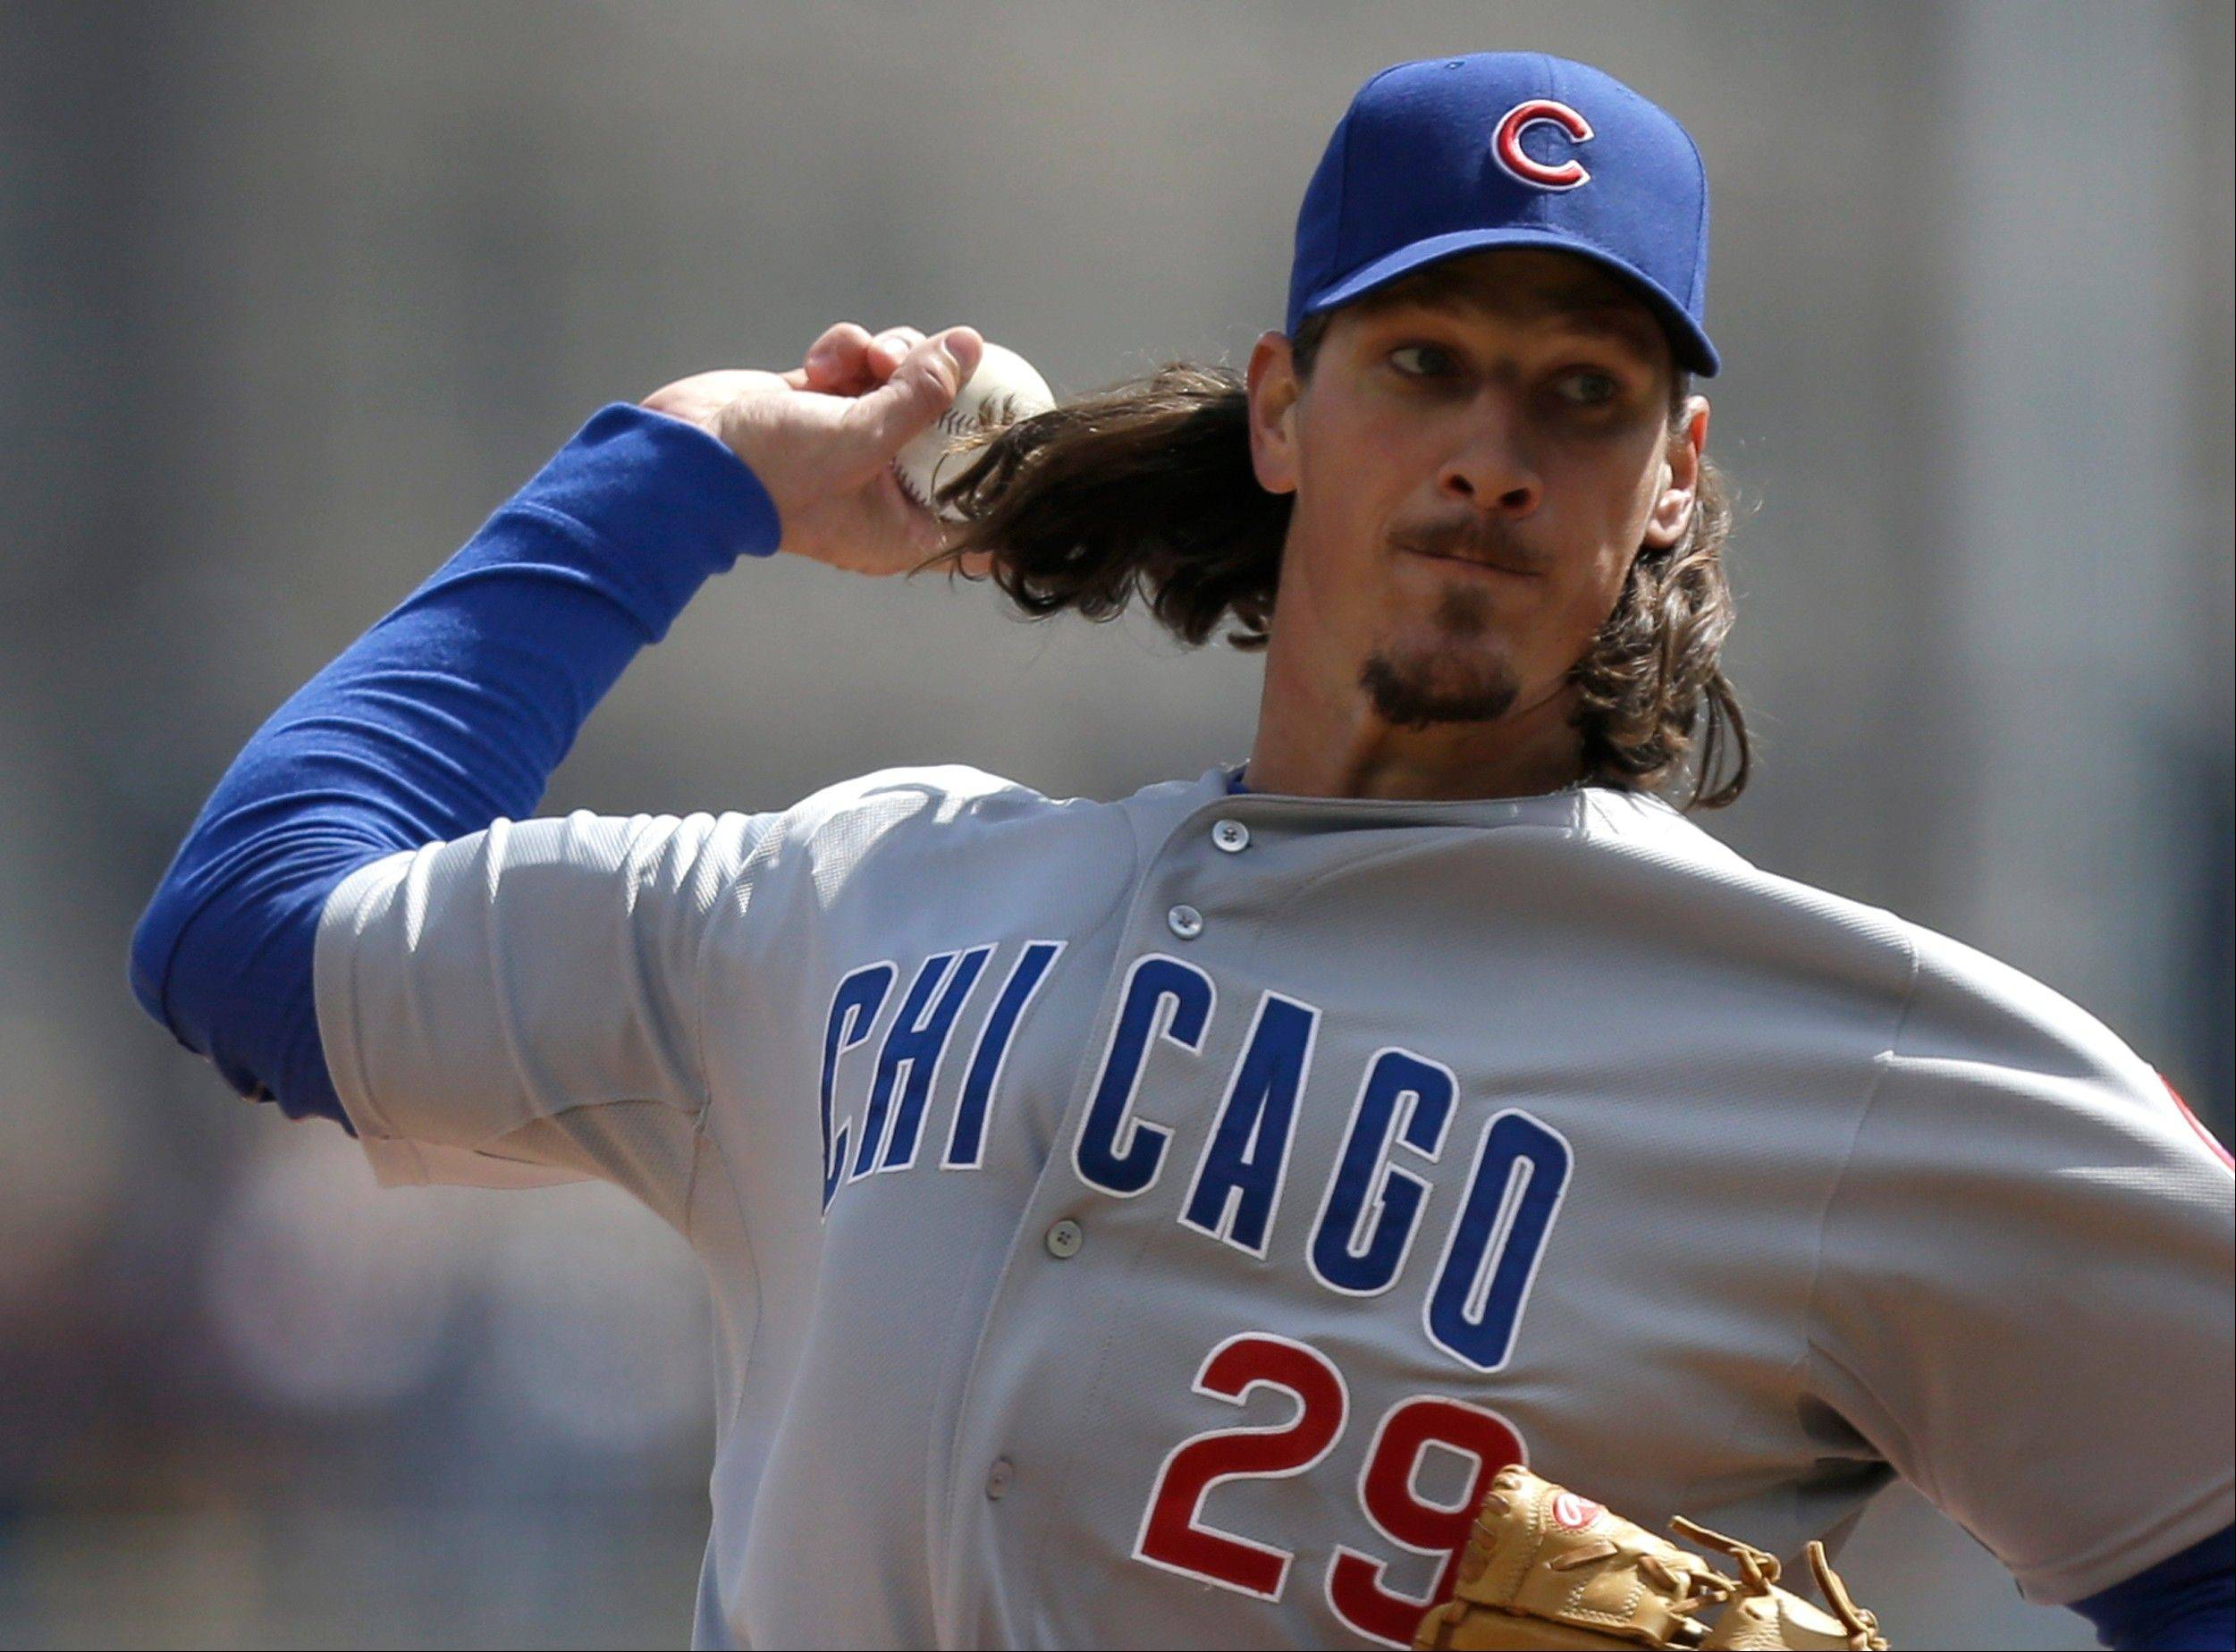 With Jeff Samardzija anchoring the Cubs pitching staff, and more youngsters in the system that need seasoning, look for the Cubs to sign a starting pitcher this winter toround out their staff next spring.